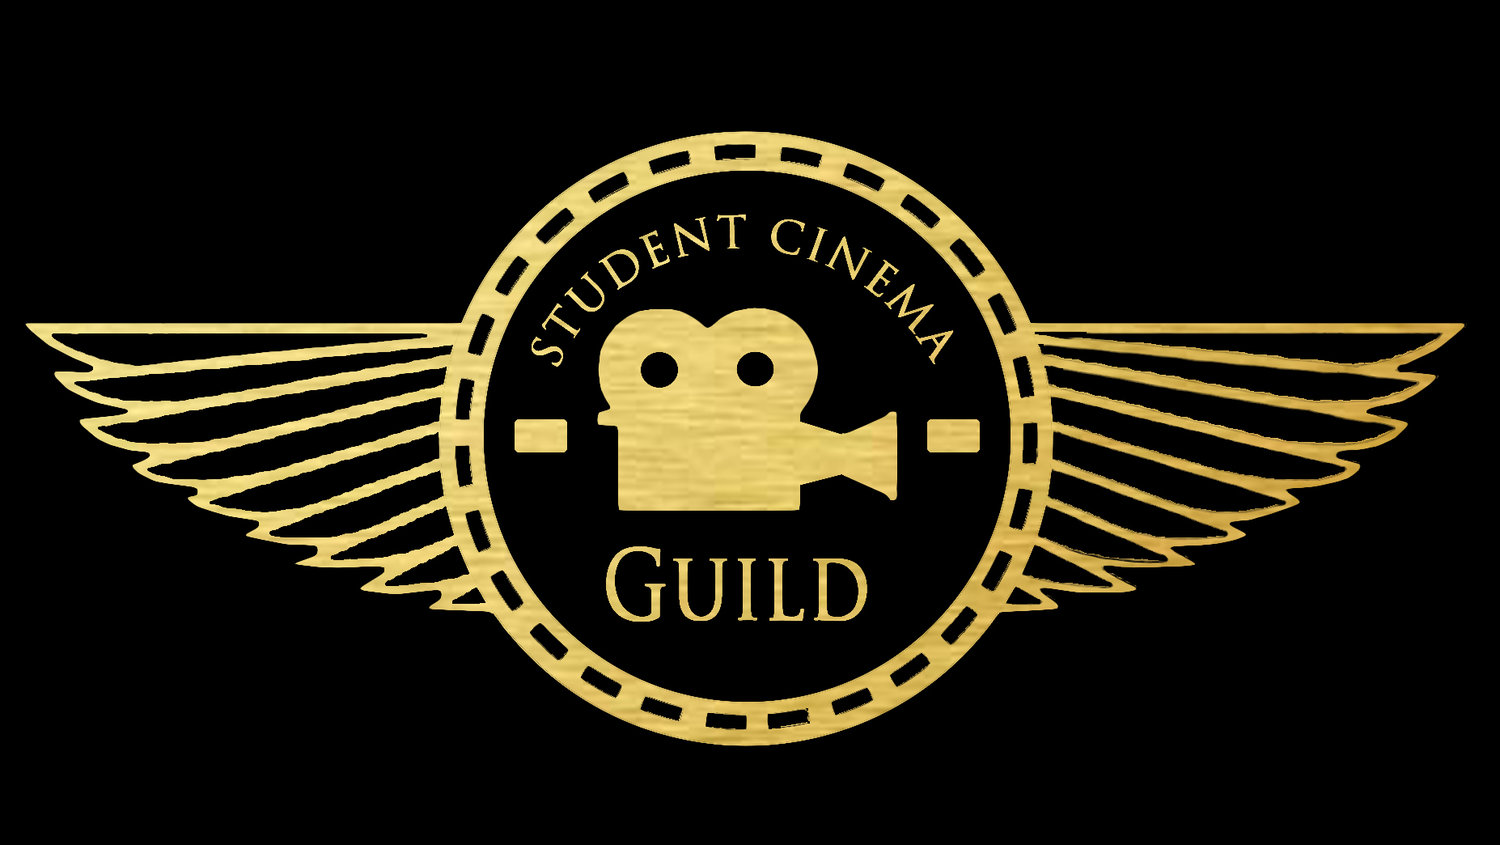 Student Cinema Guild